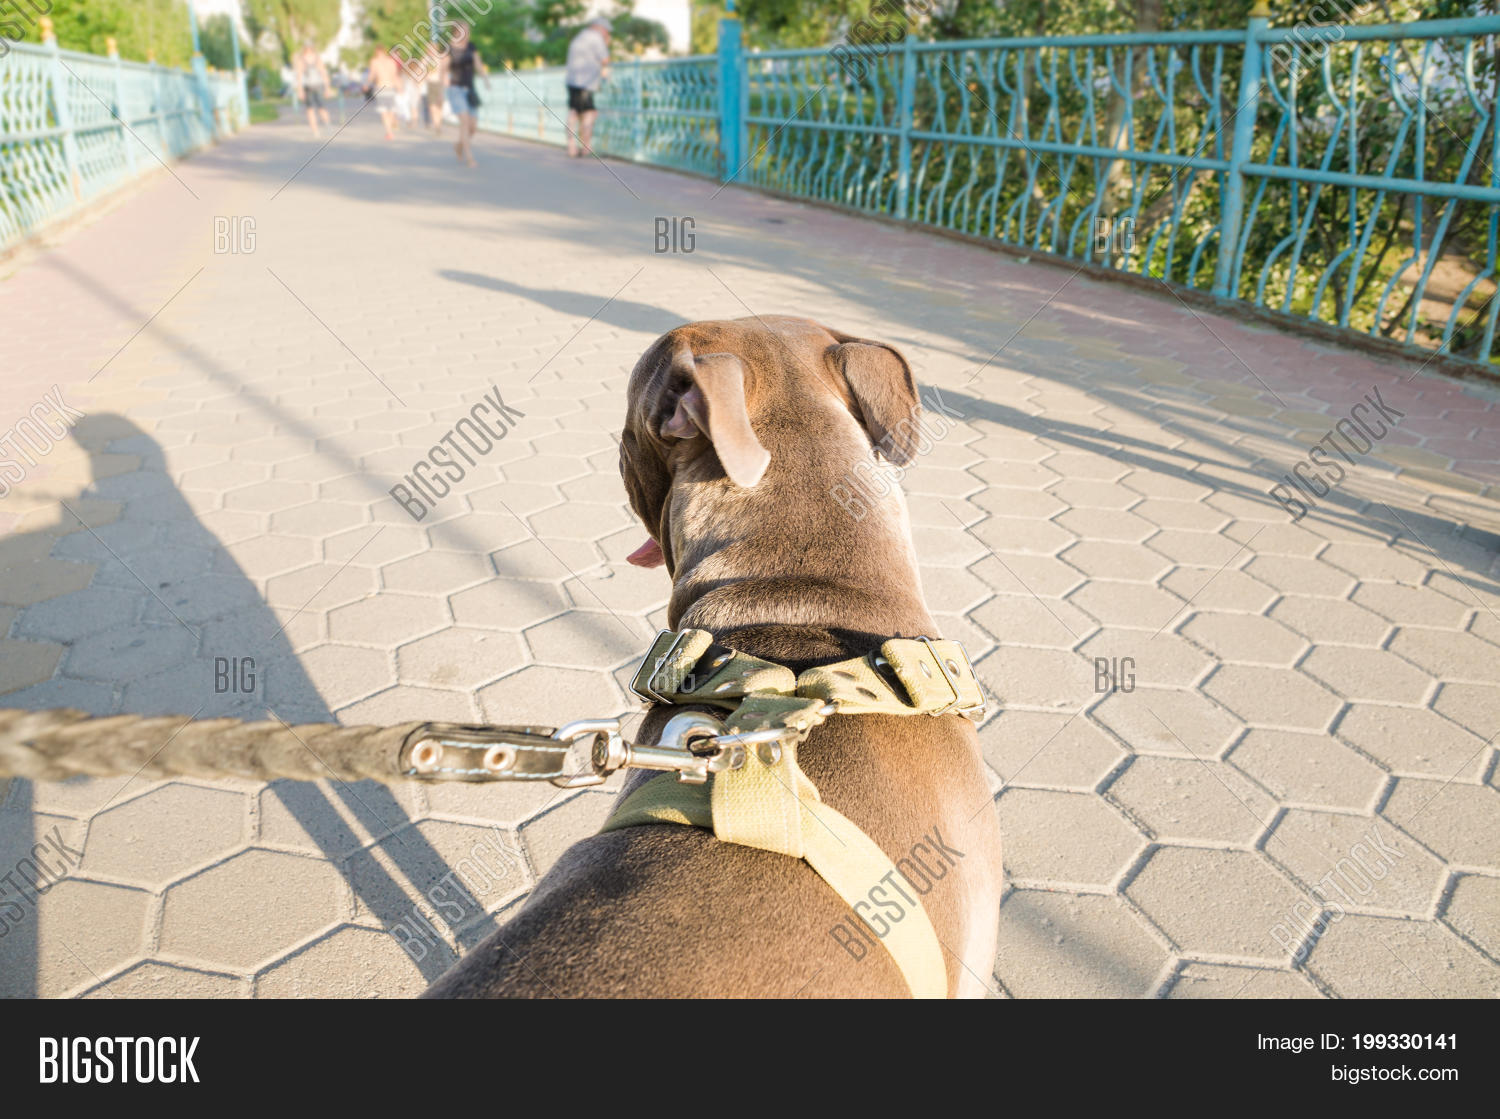 andgle,behavior,dog,dynamic,ears,forward,going,head,human,leash,outdoors,perspective,pet,point,pulling,summer,sunny,untrained,view,walk,weather,wide